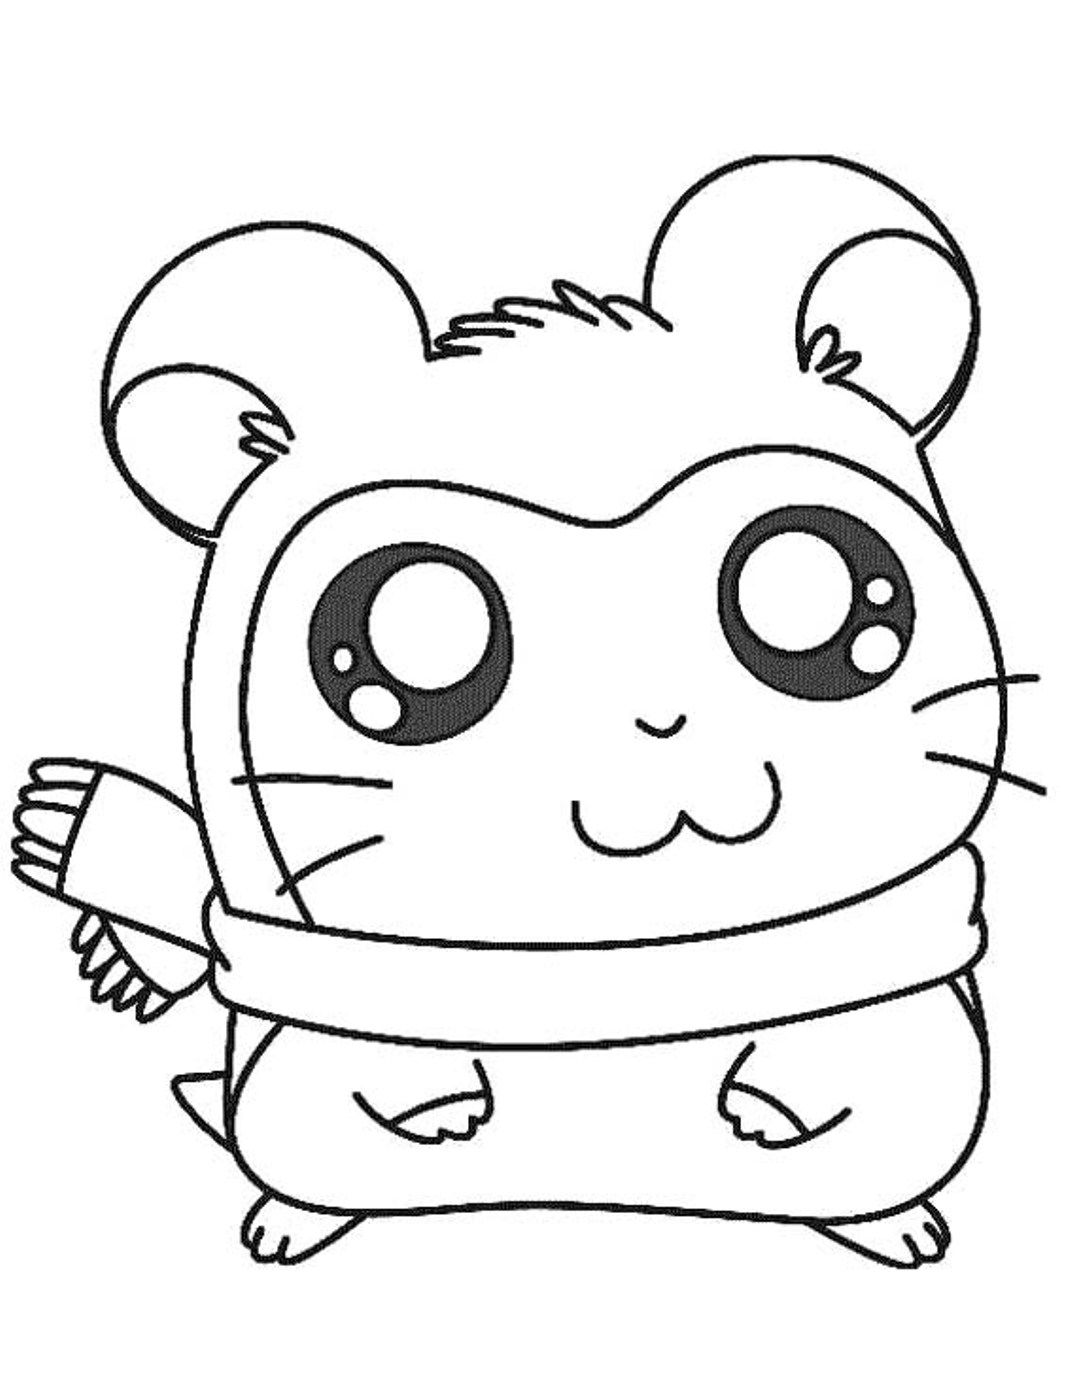 coloring page of pig pig coloring pages page coloring pig of